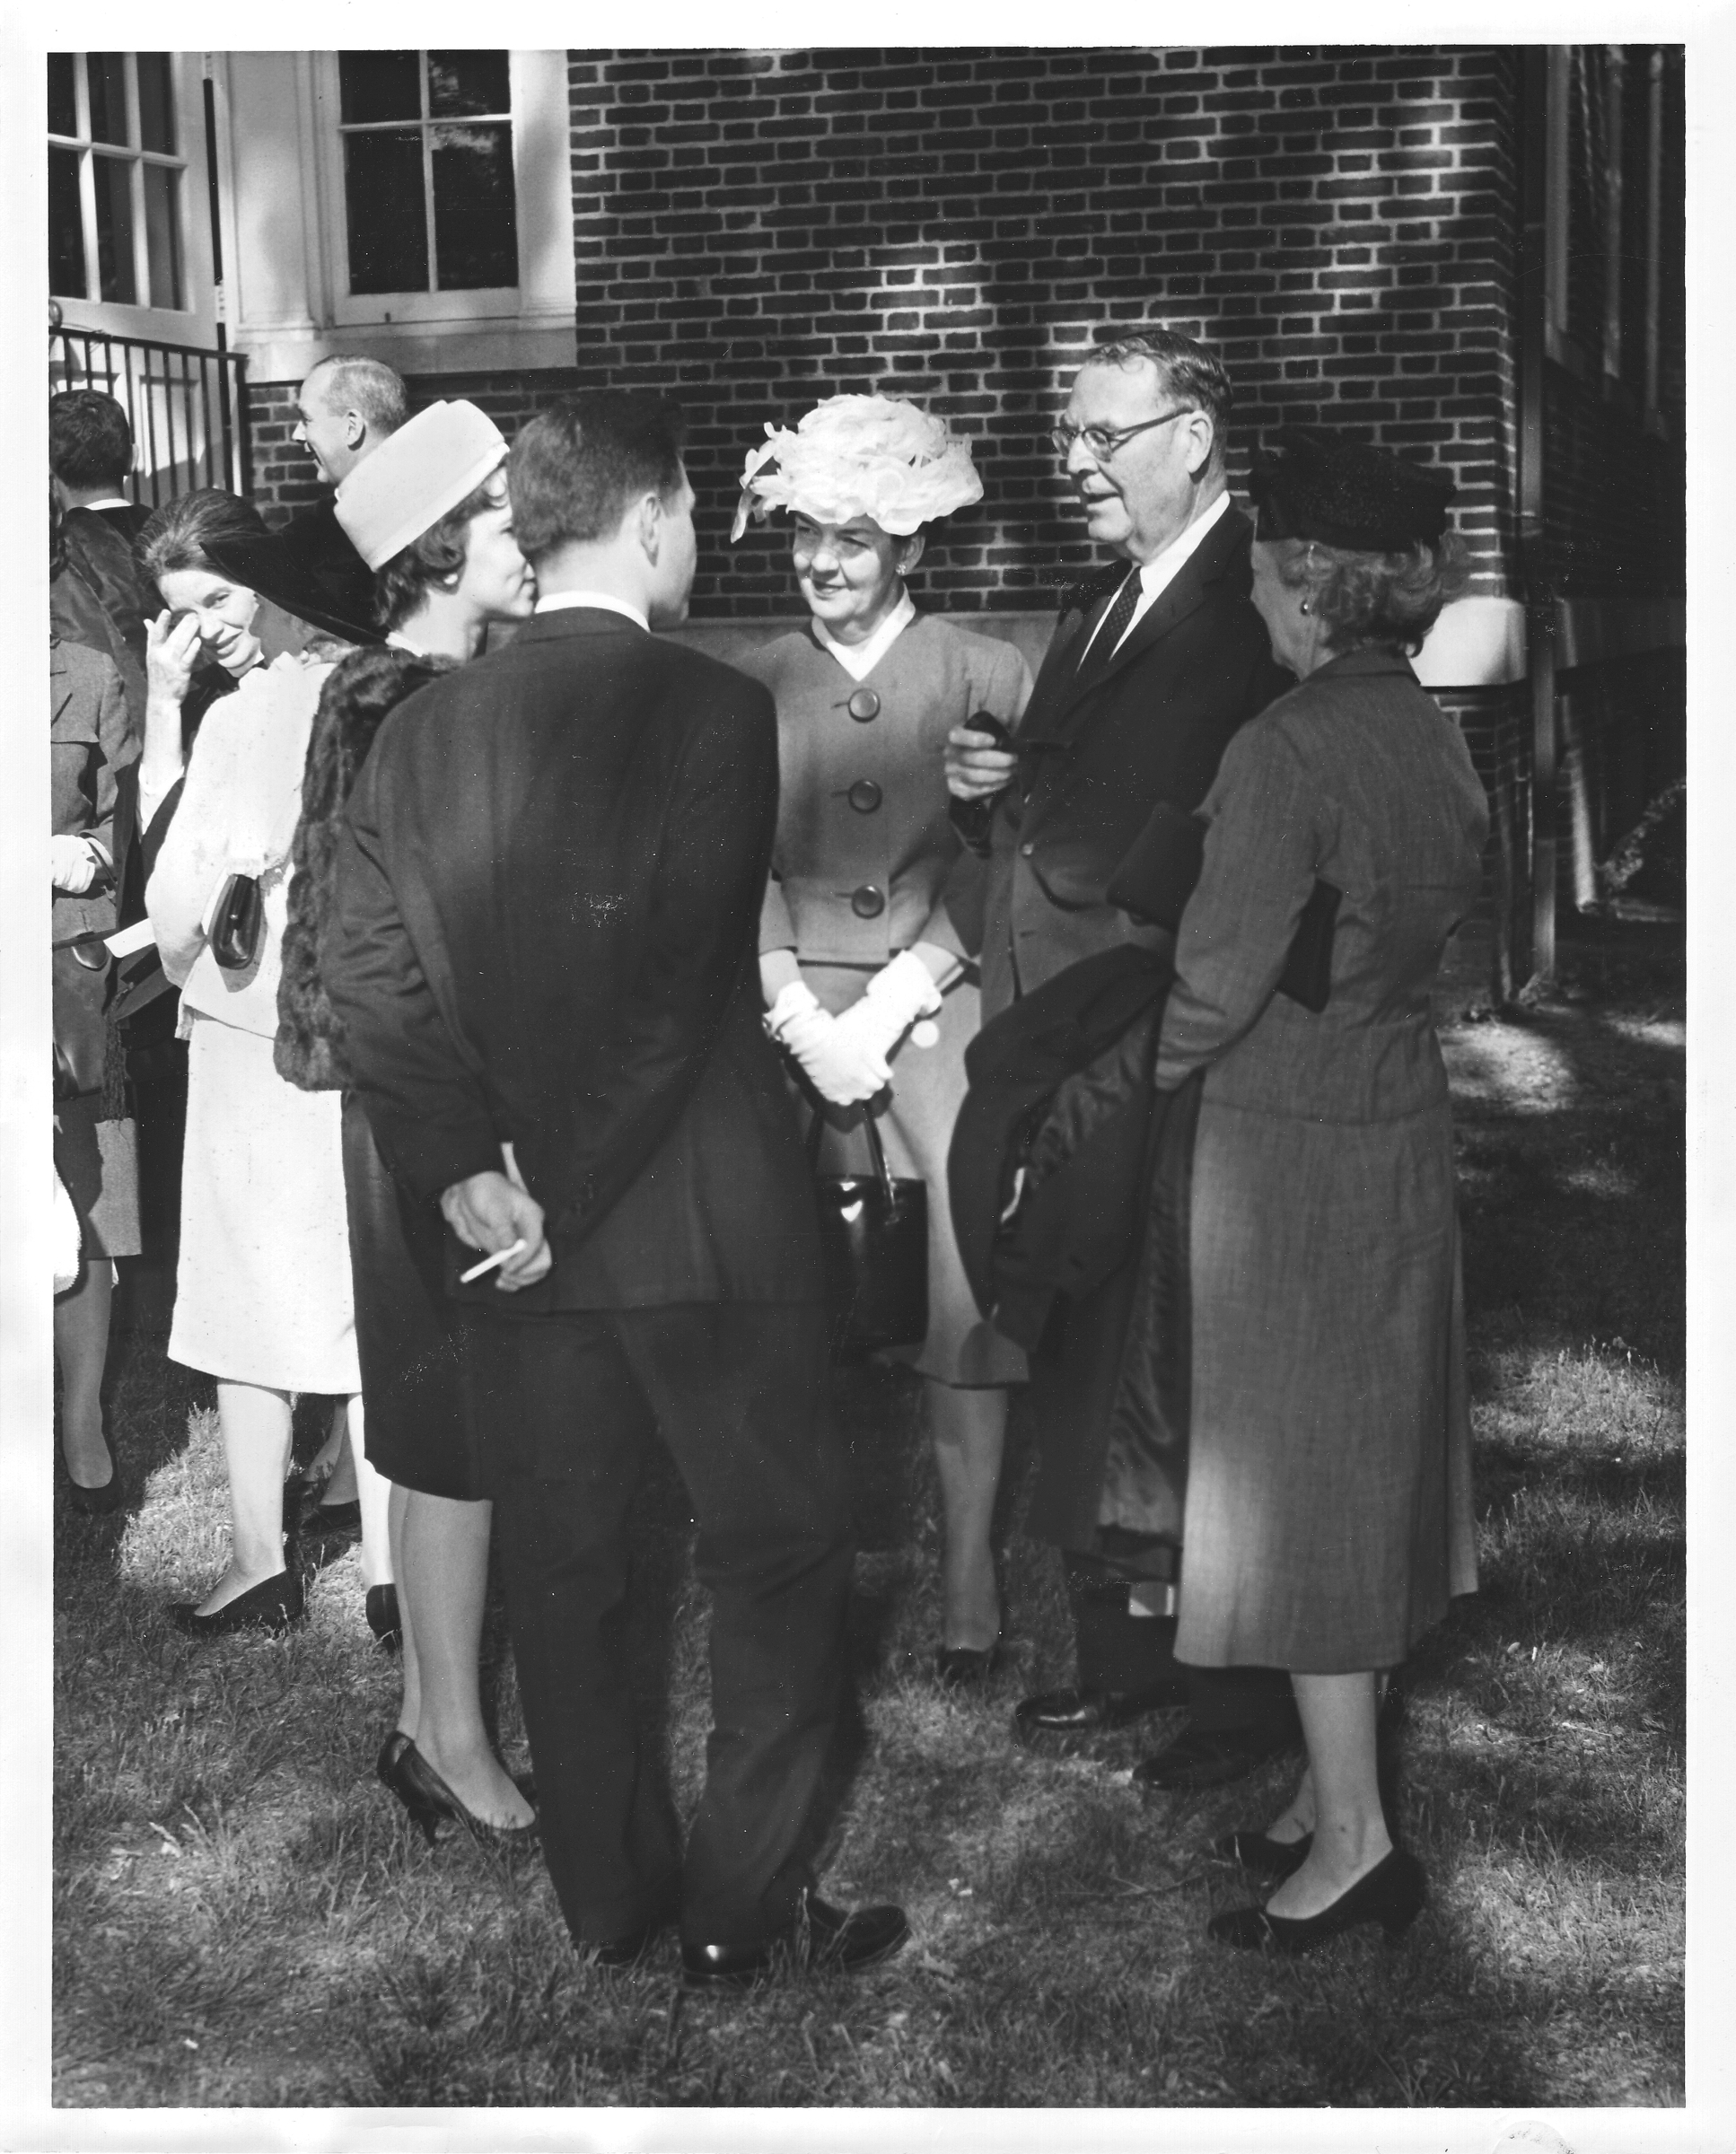 Senator Charles R. Fenwick at the George Mason College Convocation and Honor Court Ceremony, May 12, 1963.